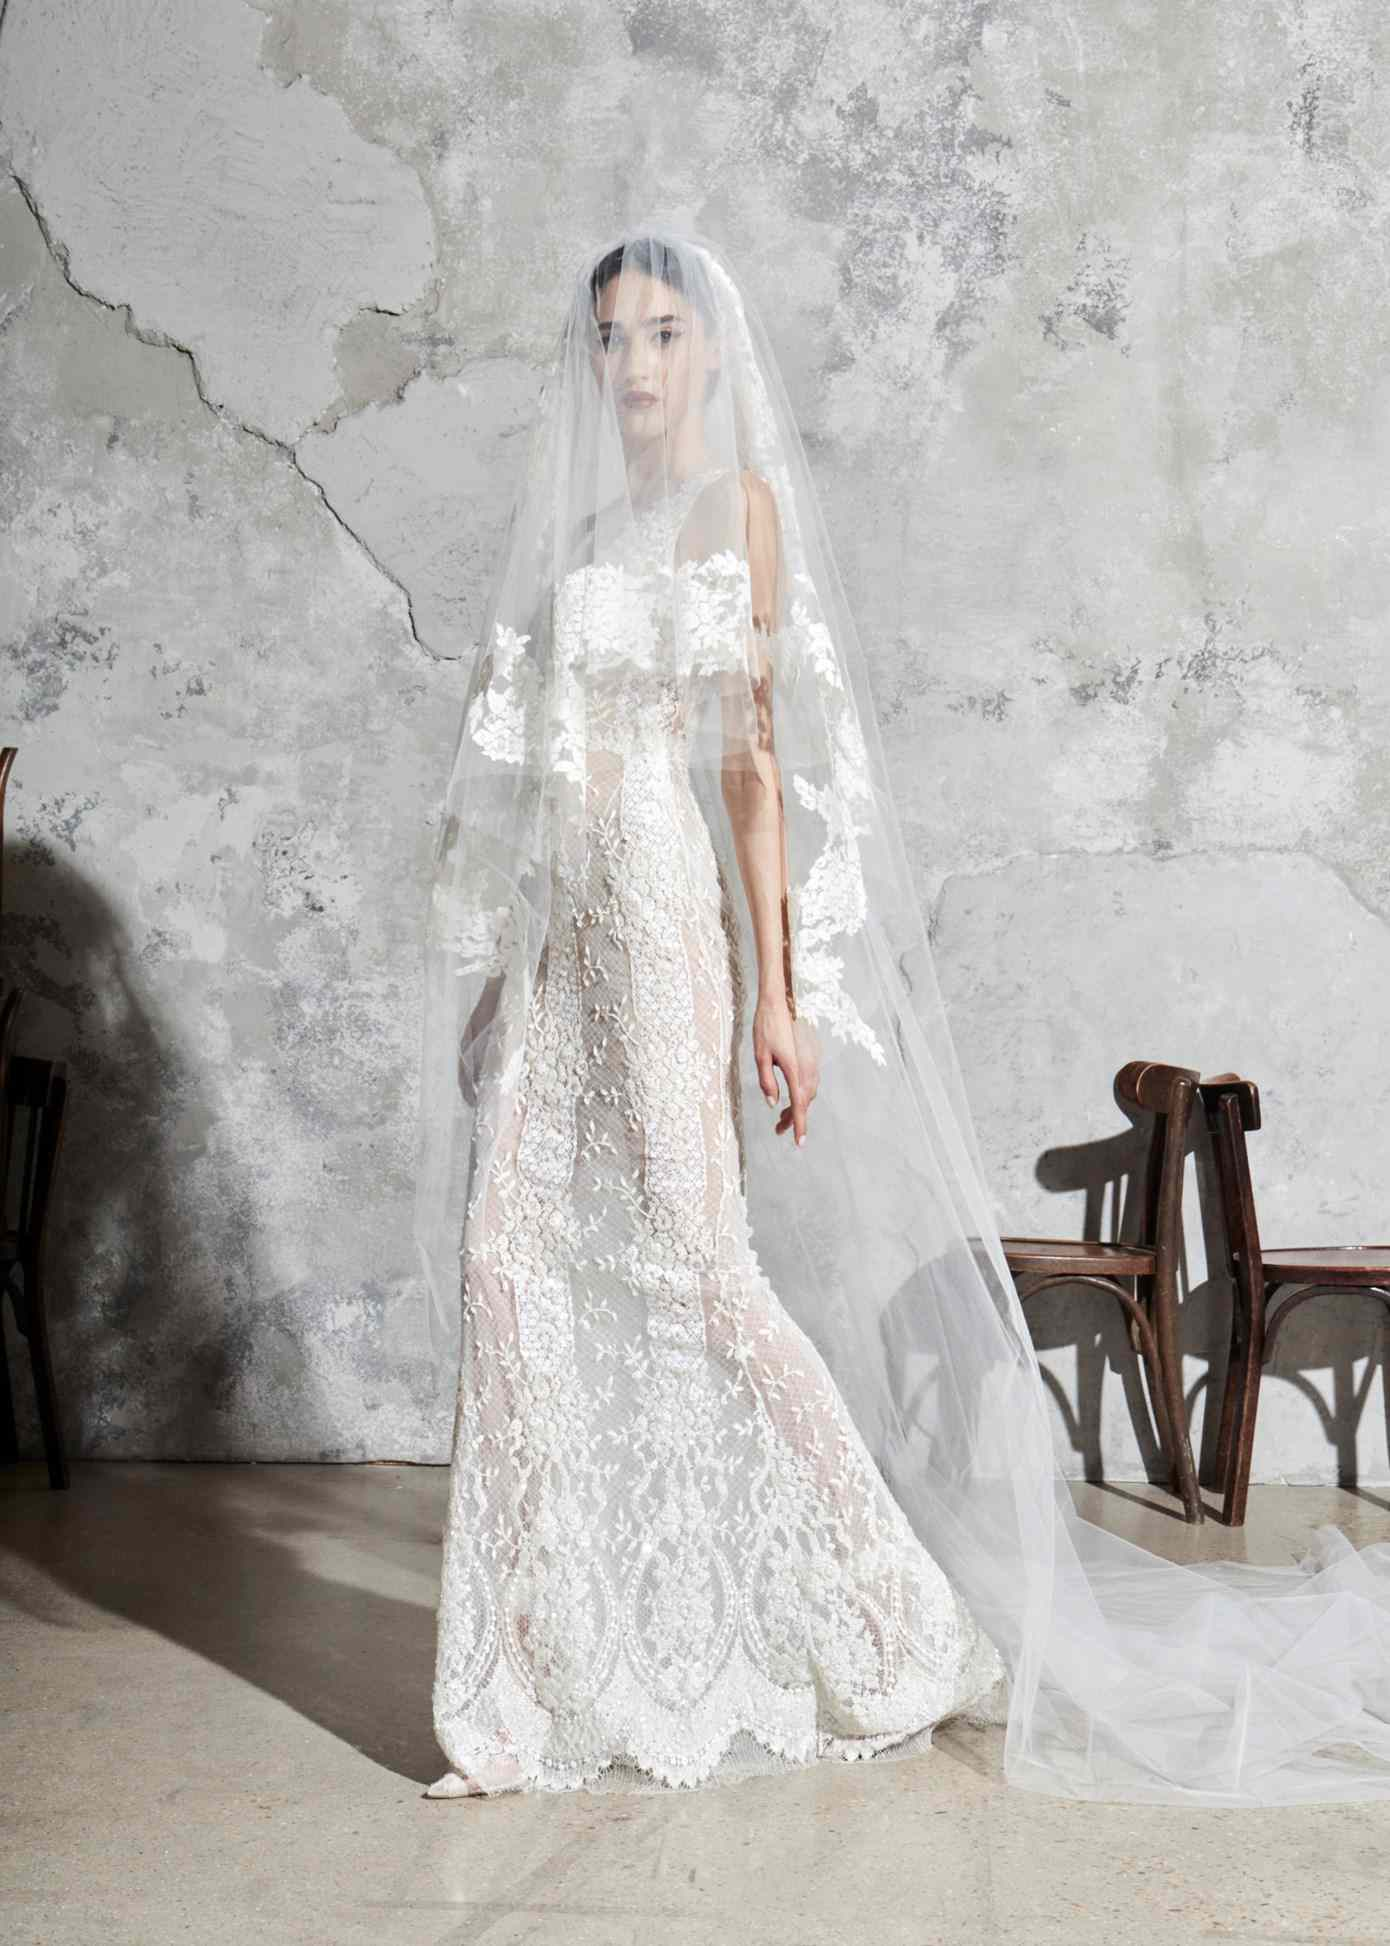 Model in a sleeveless allover lace and tulle sheath dress with a matching veil